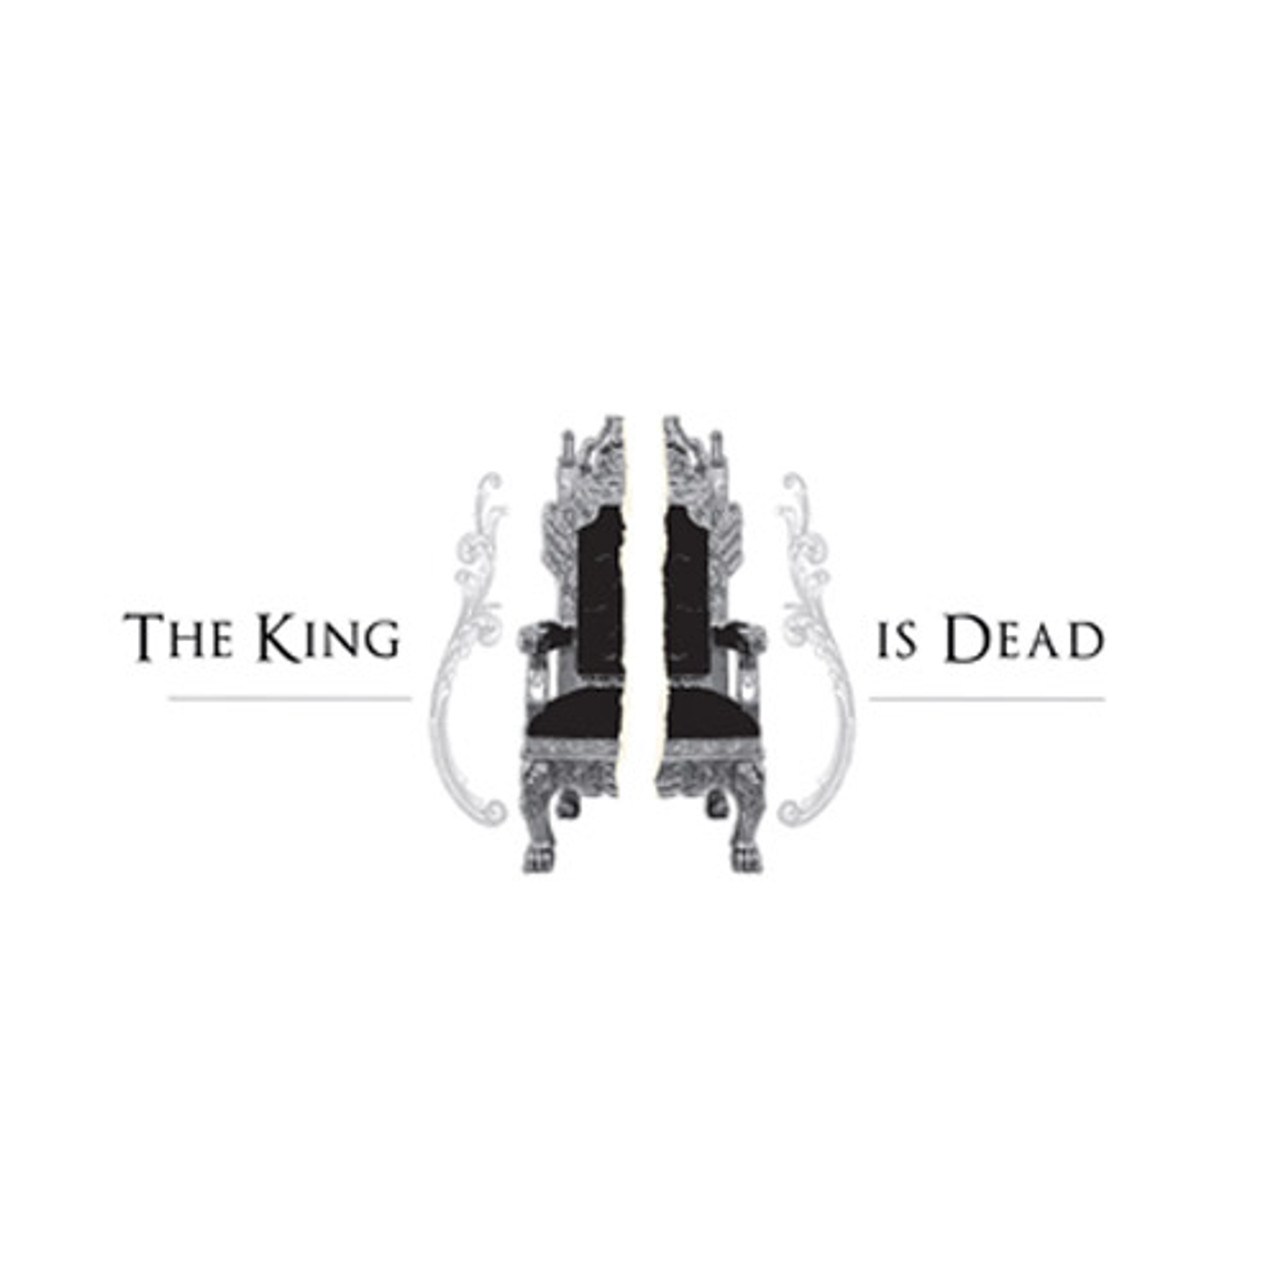 Caldwell The King is Dead Premier Negrito Cigars - 5.5 x 50 (Box of 20)